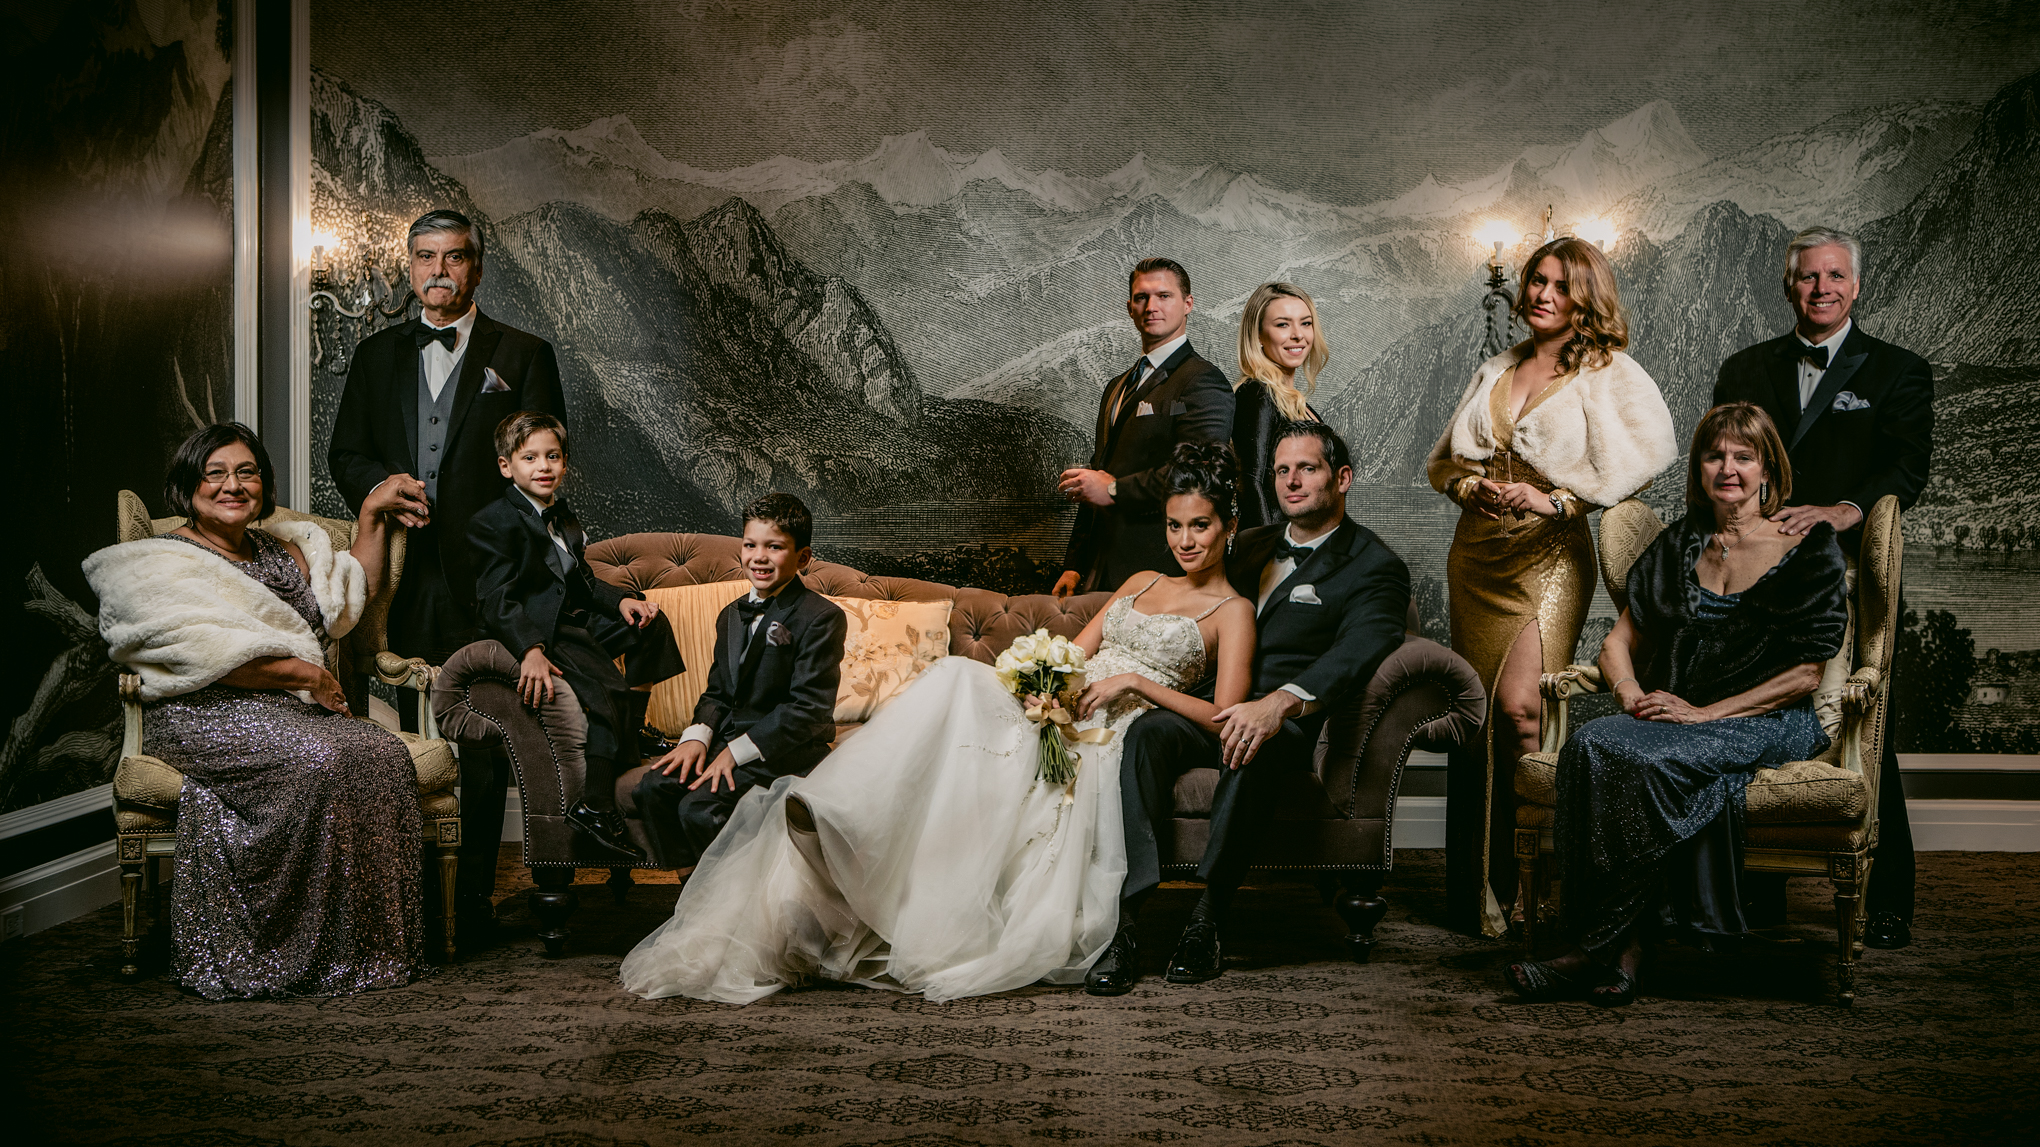 Aspen wedding photography-0015.jpg